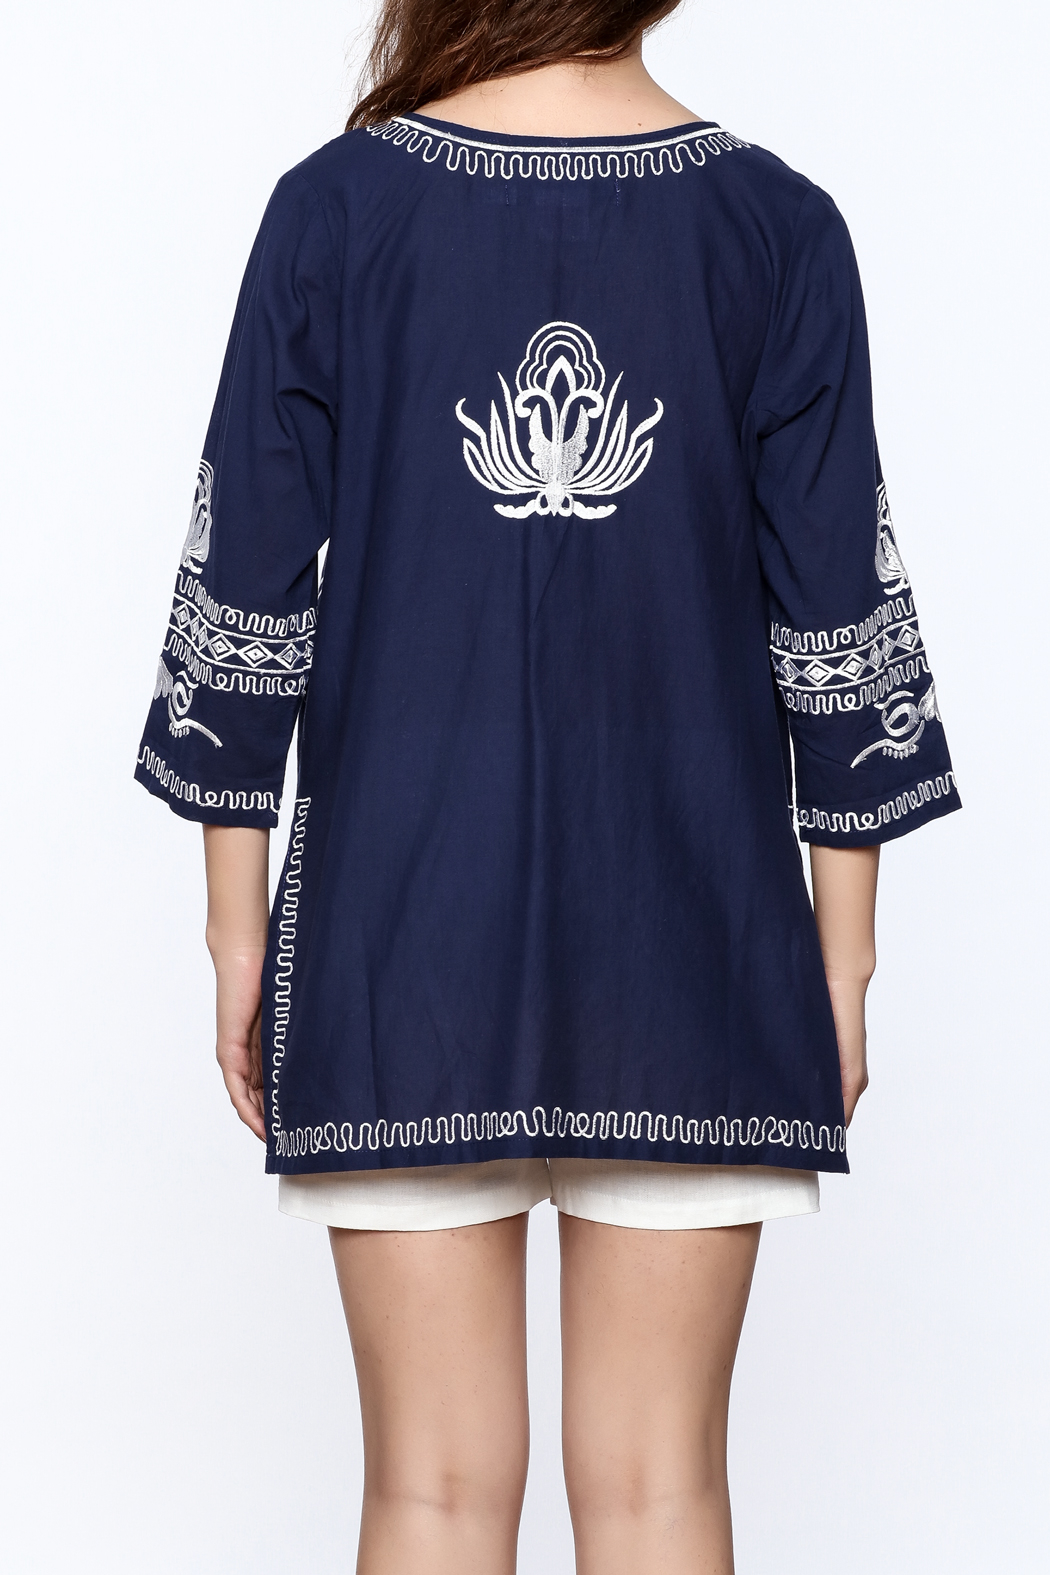 Gretchen Scott Navy Embroidered Tunic Top - Back Cropped Image